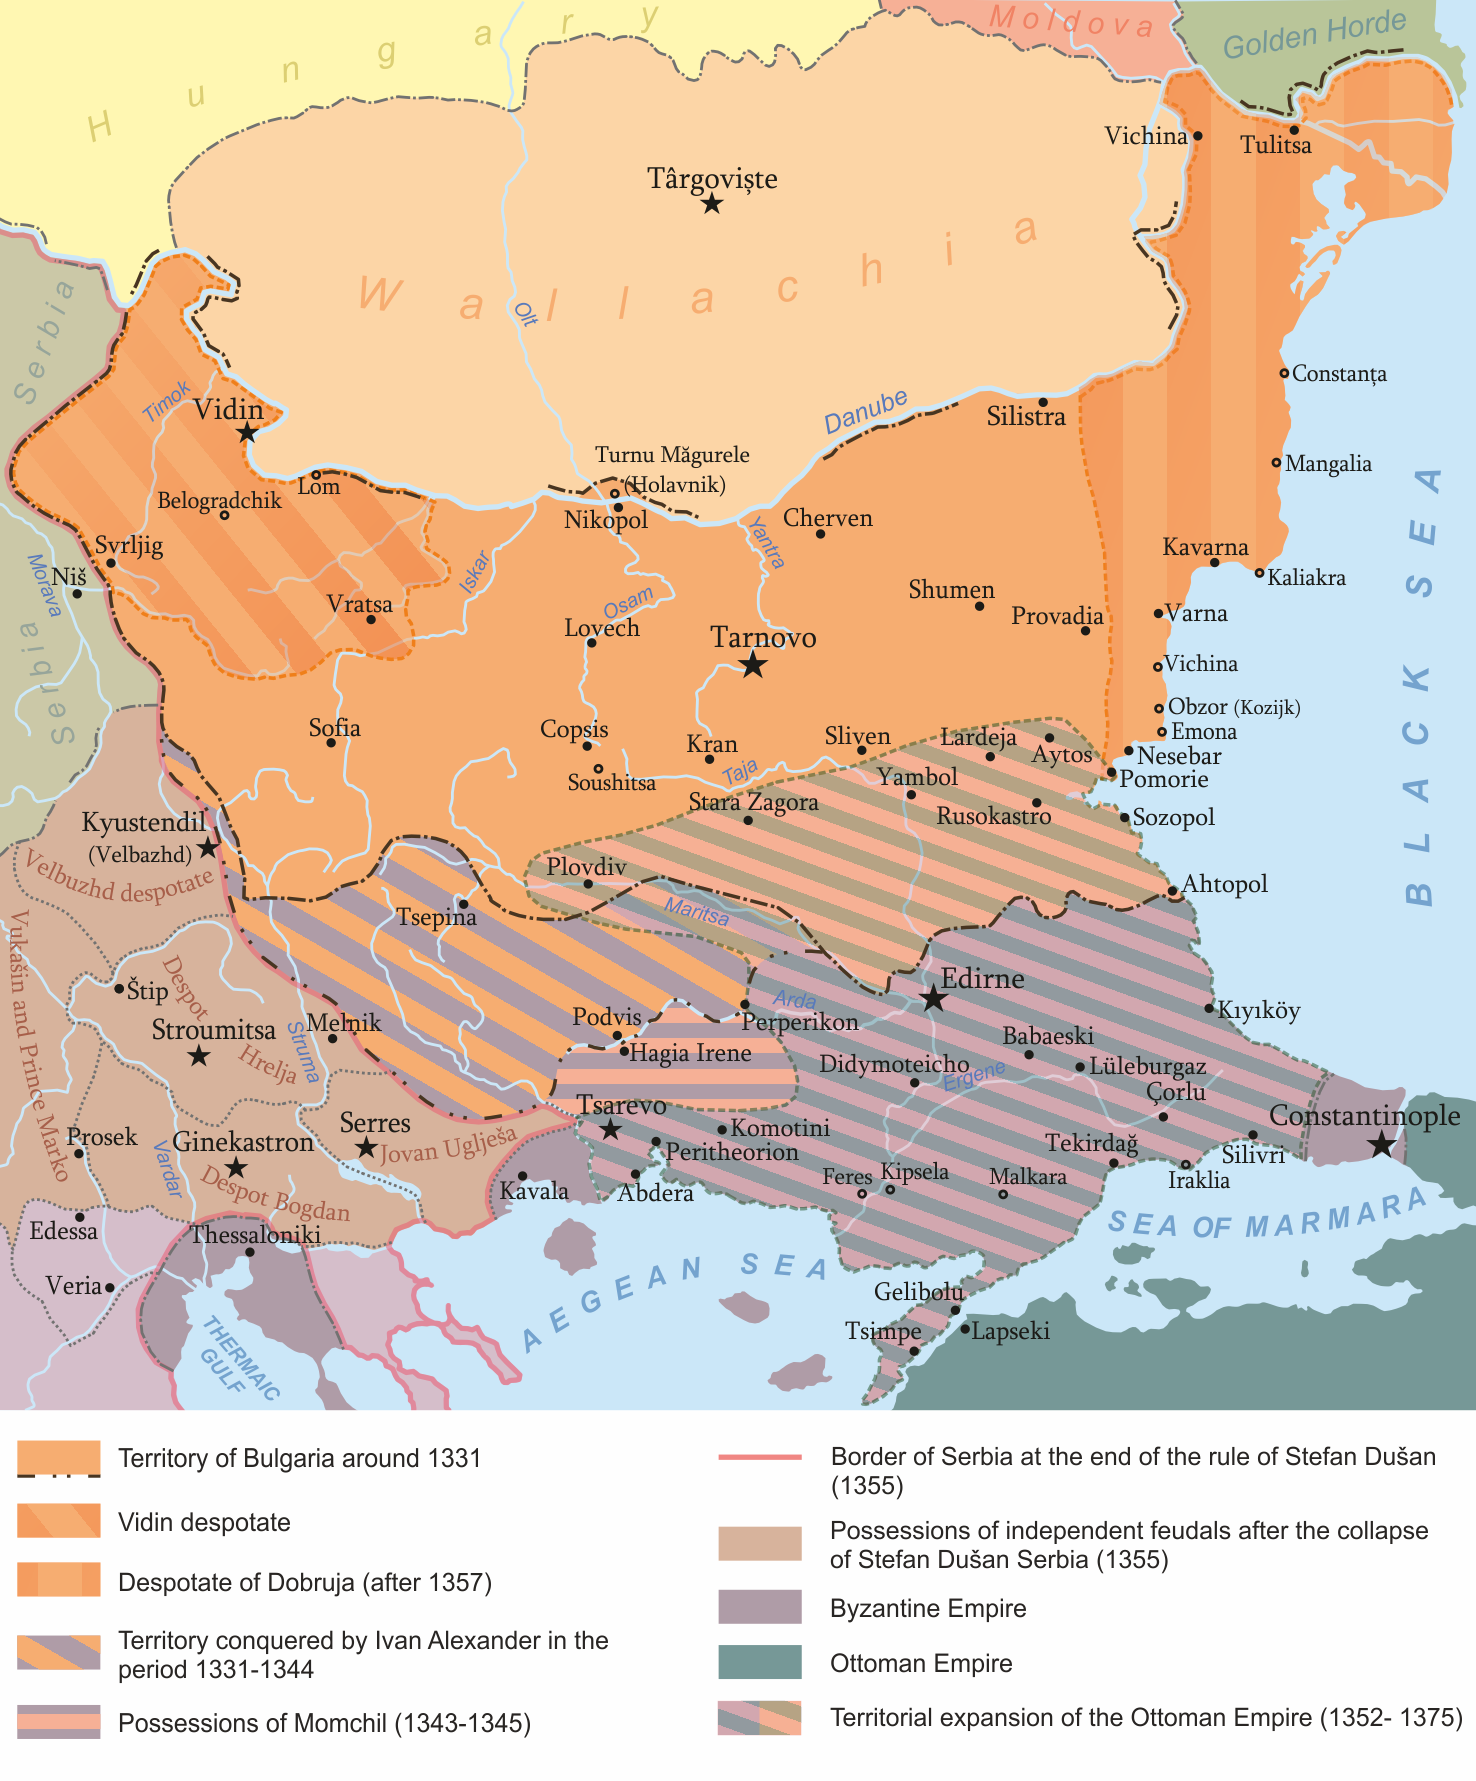 Second_Bulgarian_Empire_under_the_rule_o